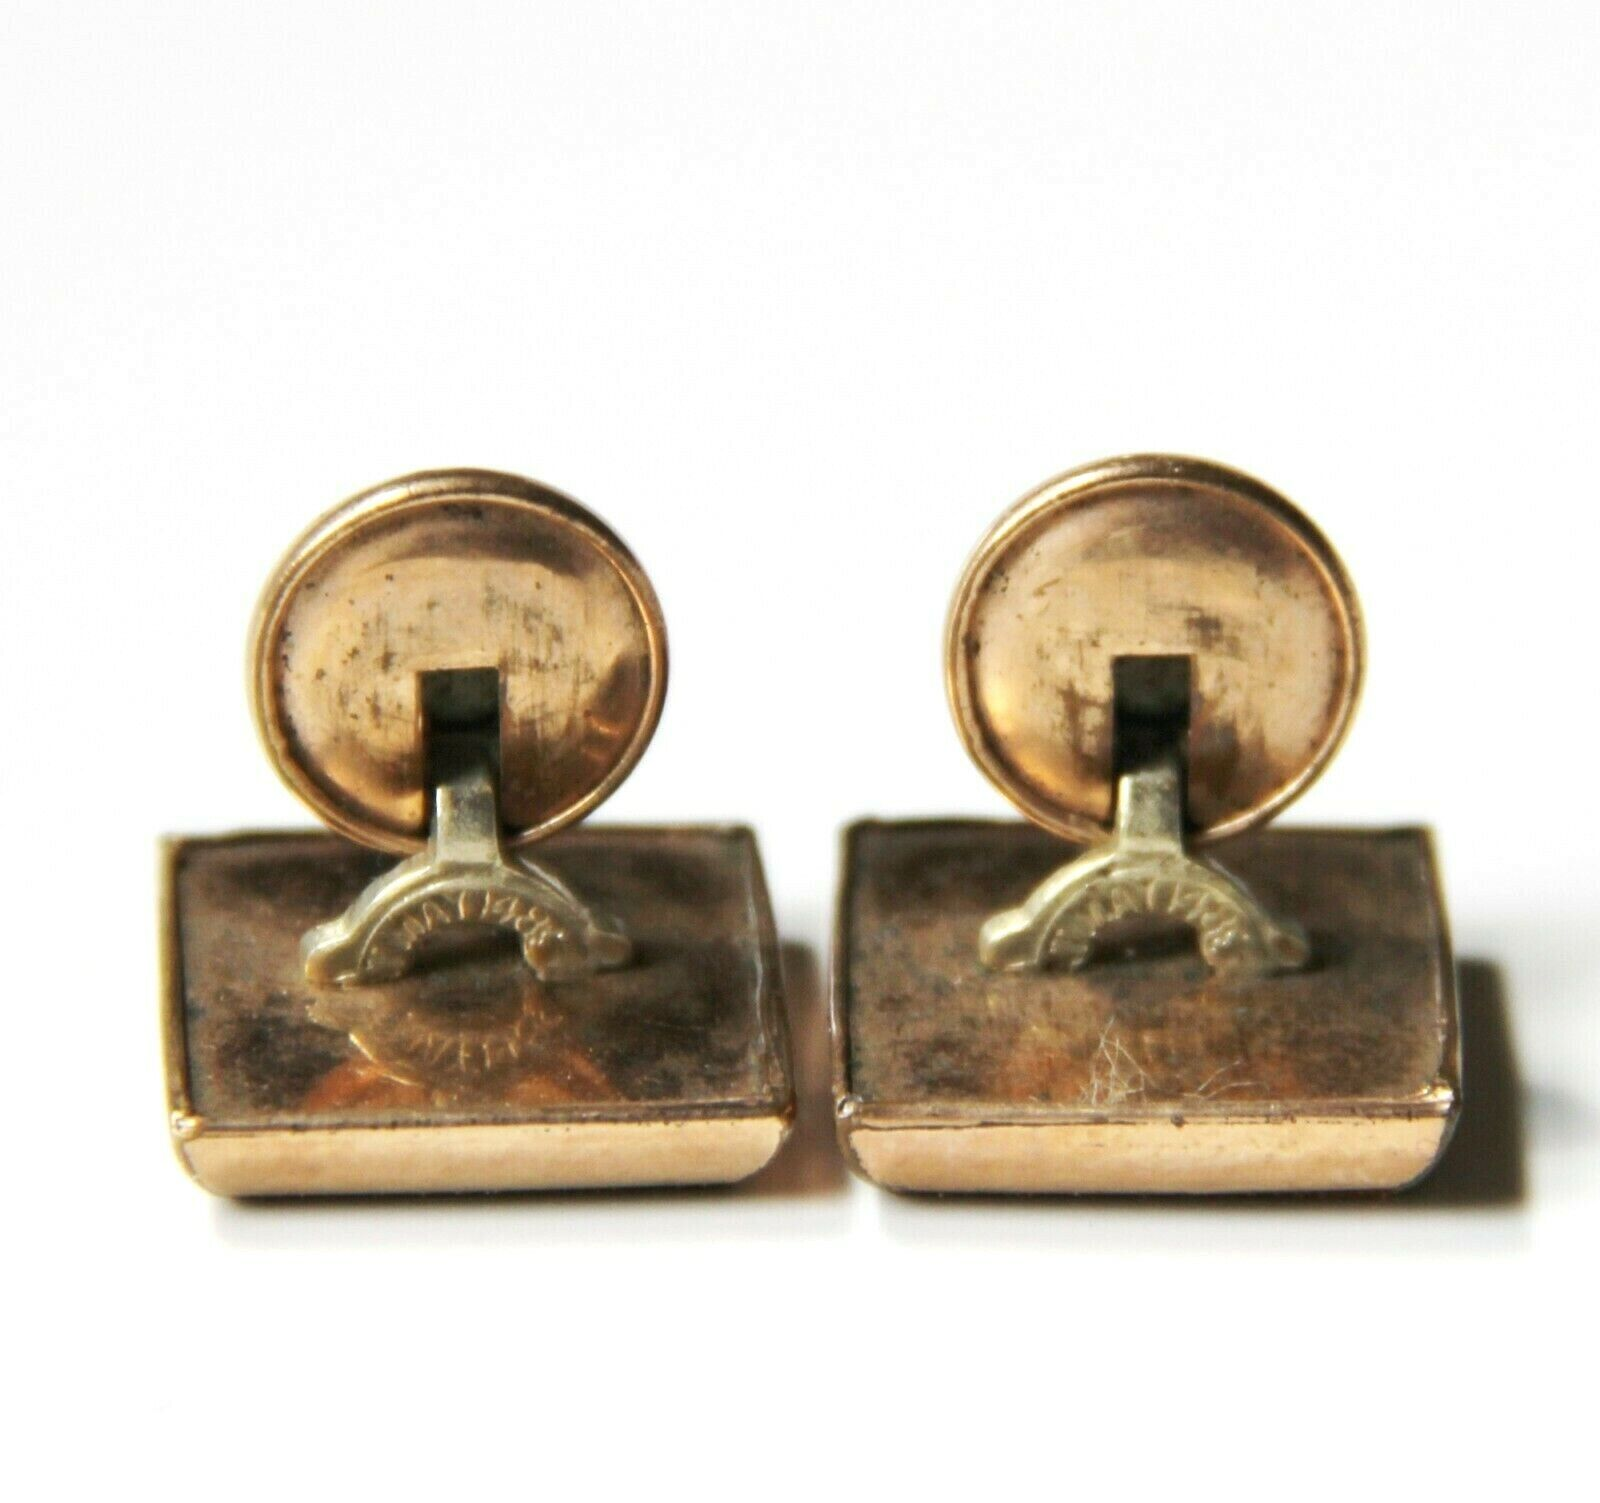 Antique AVENTURINE GLASS Unisex Cufflinks  Victorian Diamond-Shaped Repousse Gold /& Goldstone Cuff Links  Movable Oval Backs on Fixed Bars